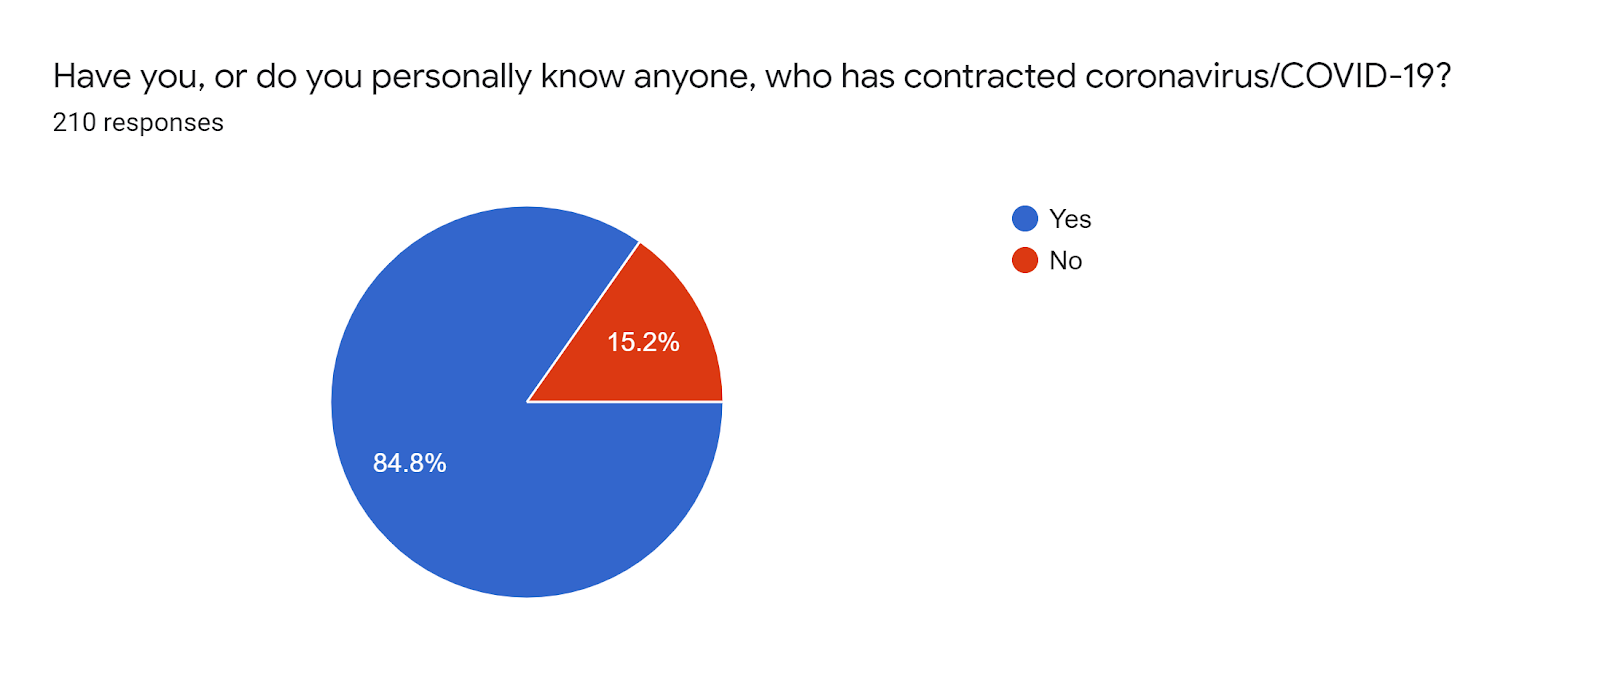 Forms response chart. Question title: Have you, or do you personally know anyone, who has contracted coronavirus/COVID-19?. Number of responses: 210 responses.